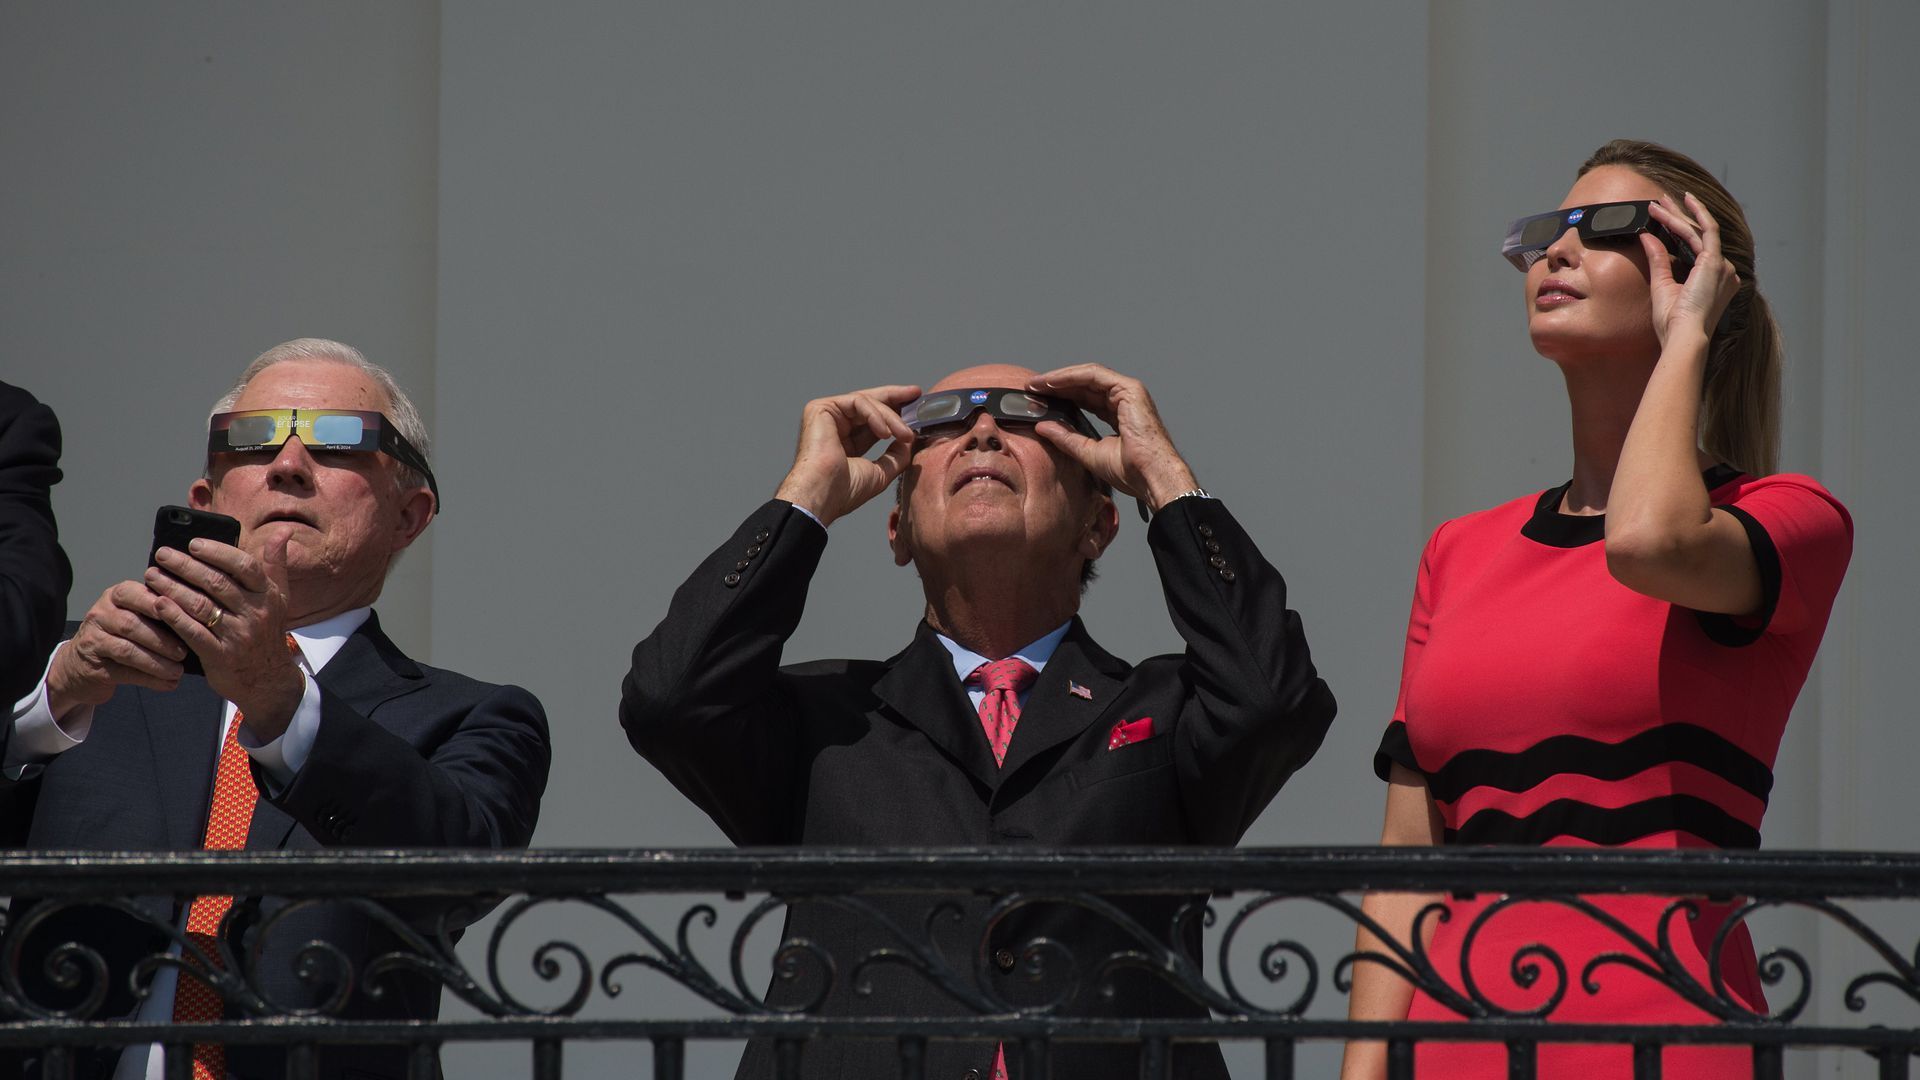 Solar eclipse viewing